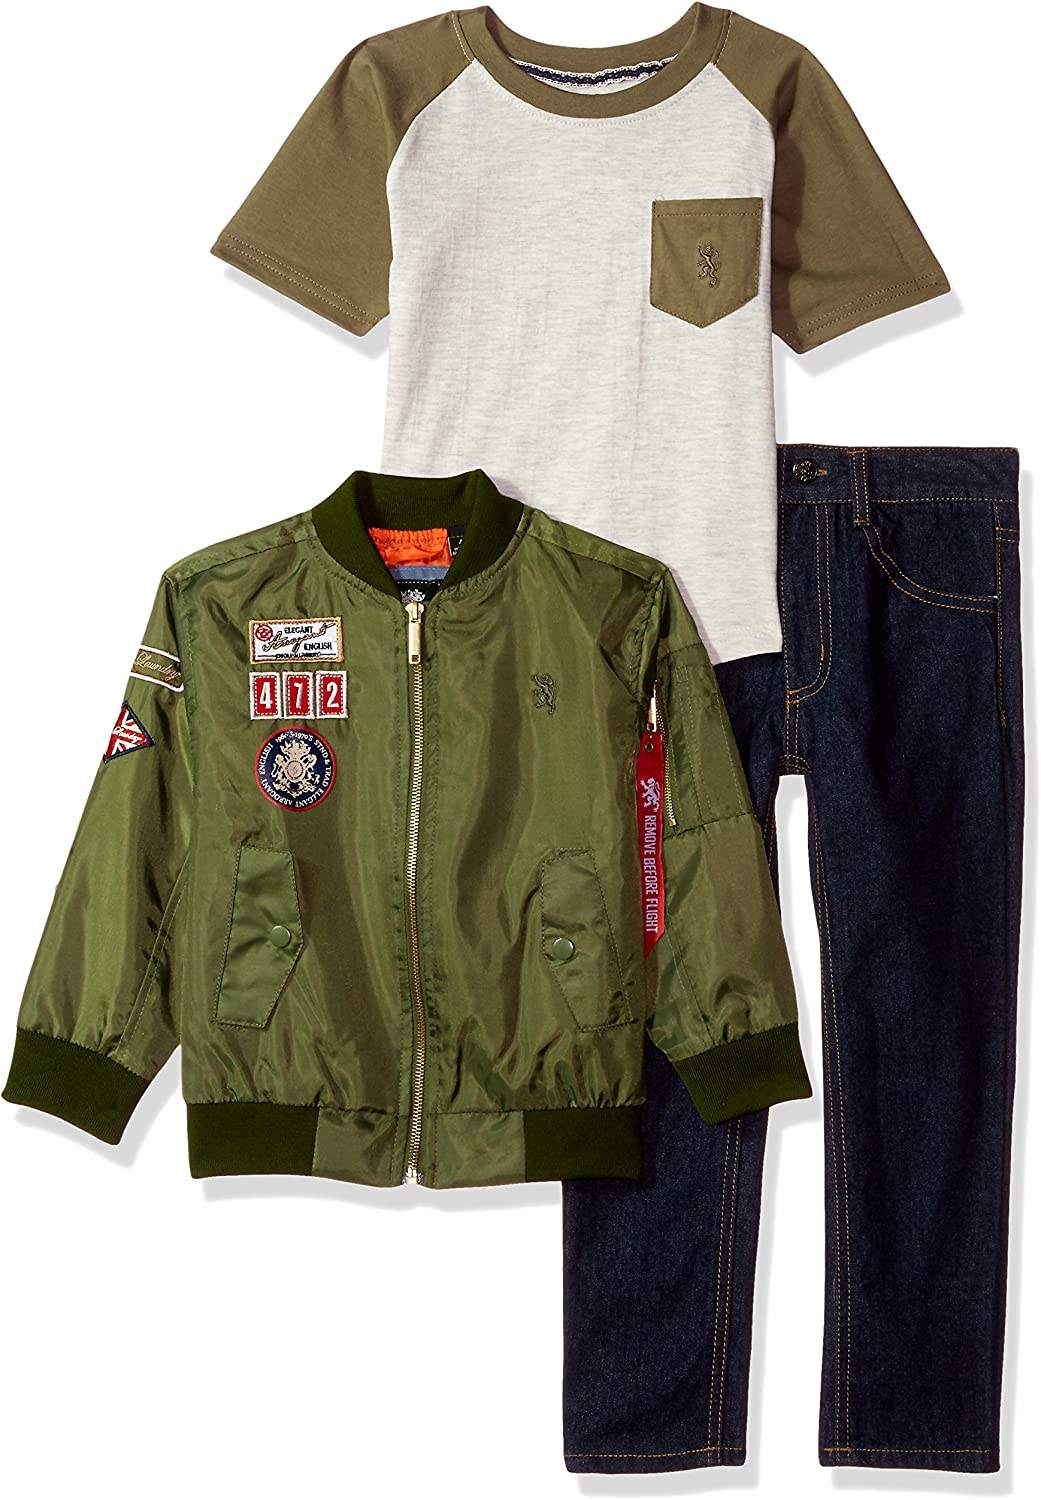 English Laundry Boys' Jacket, T-Shirt and Pant Set (More Styles Available)